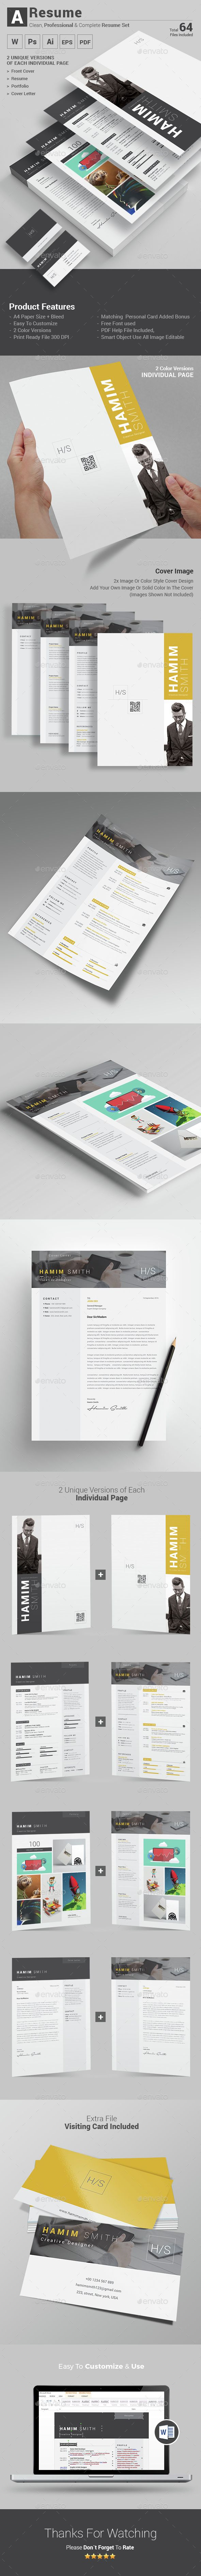 best images about shri collections resume tips first impression is the last impression kickstart your career this awesome resume template